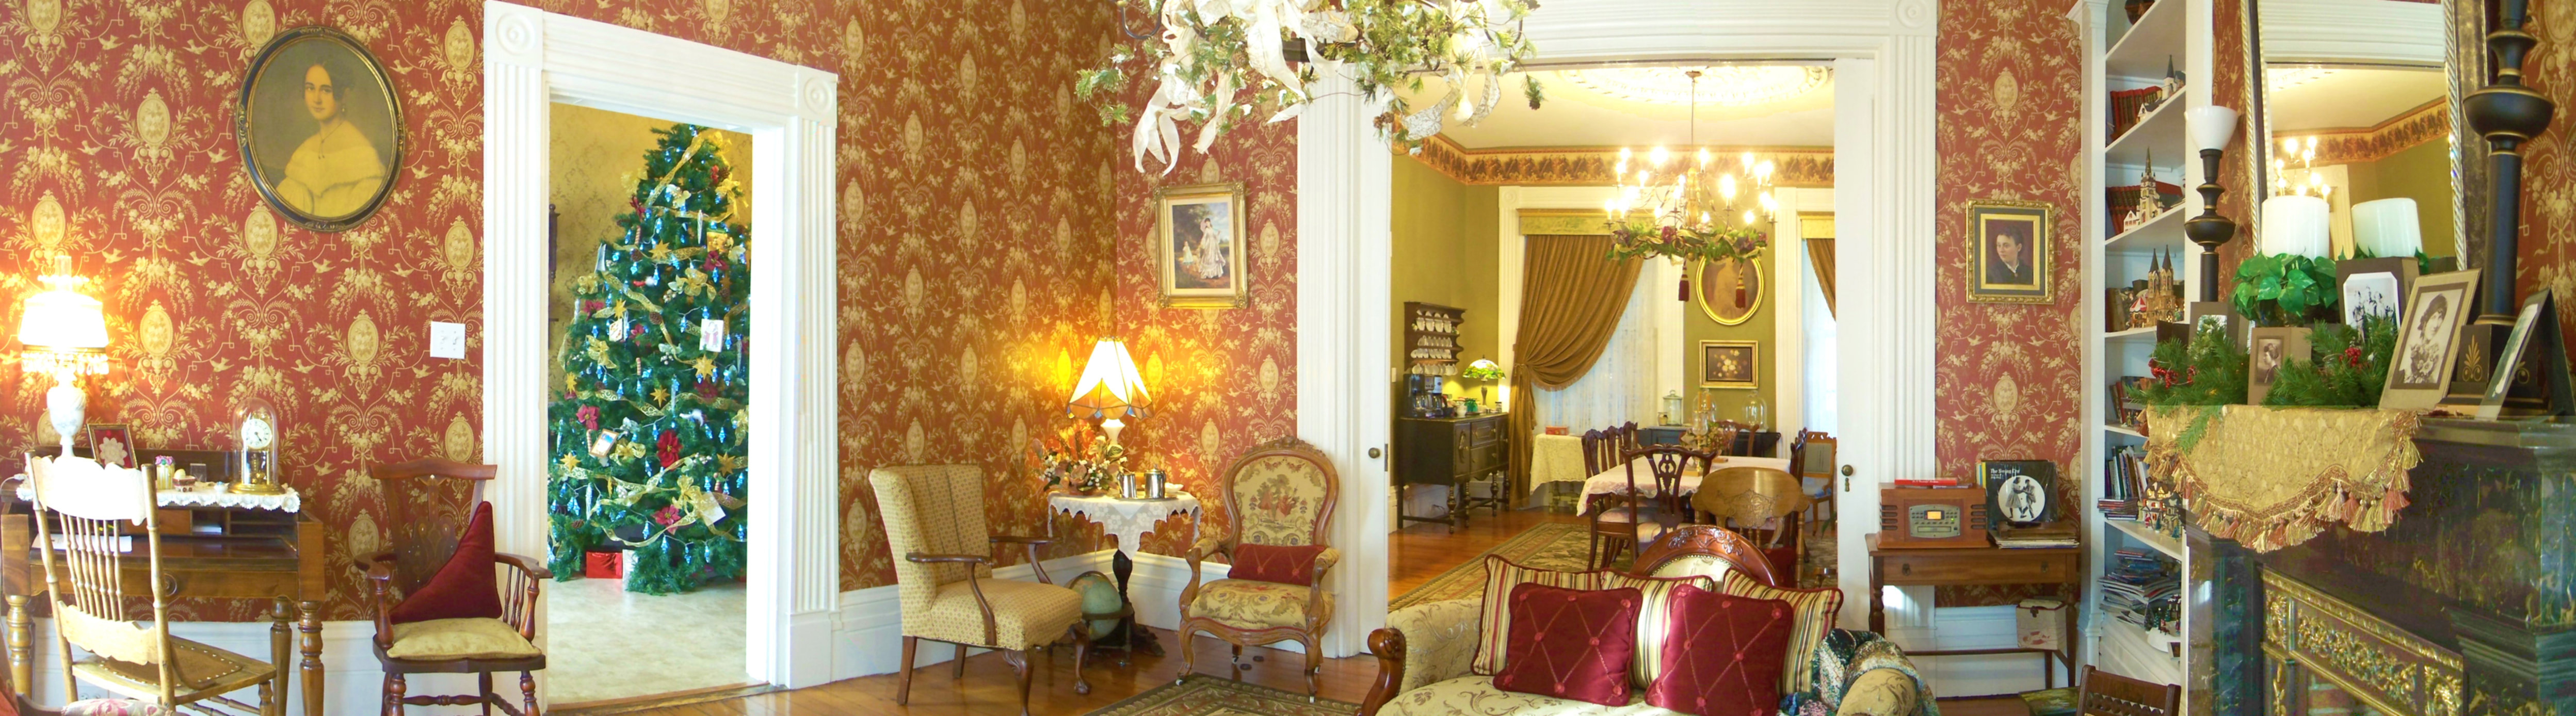 A living room filled with furniture and a fire place at Azalea Manor Bed & Breakfast.